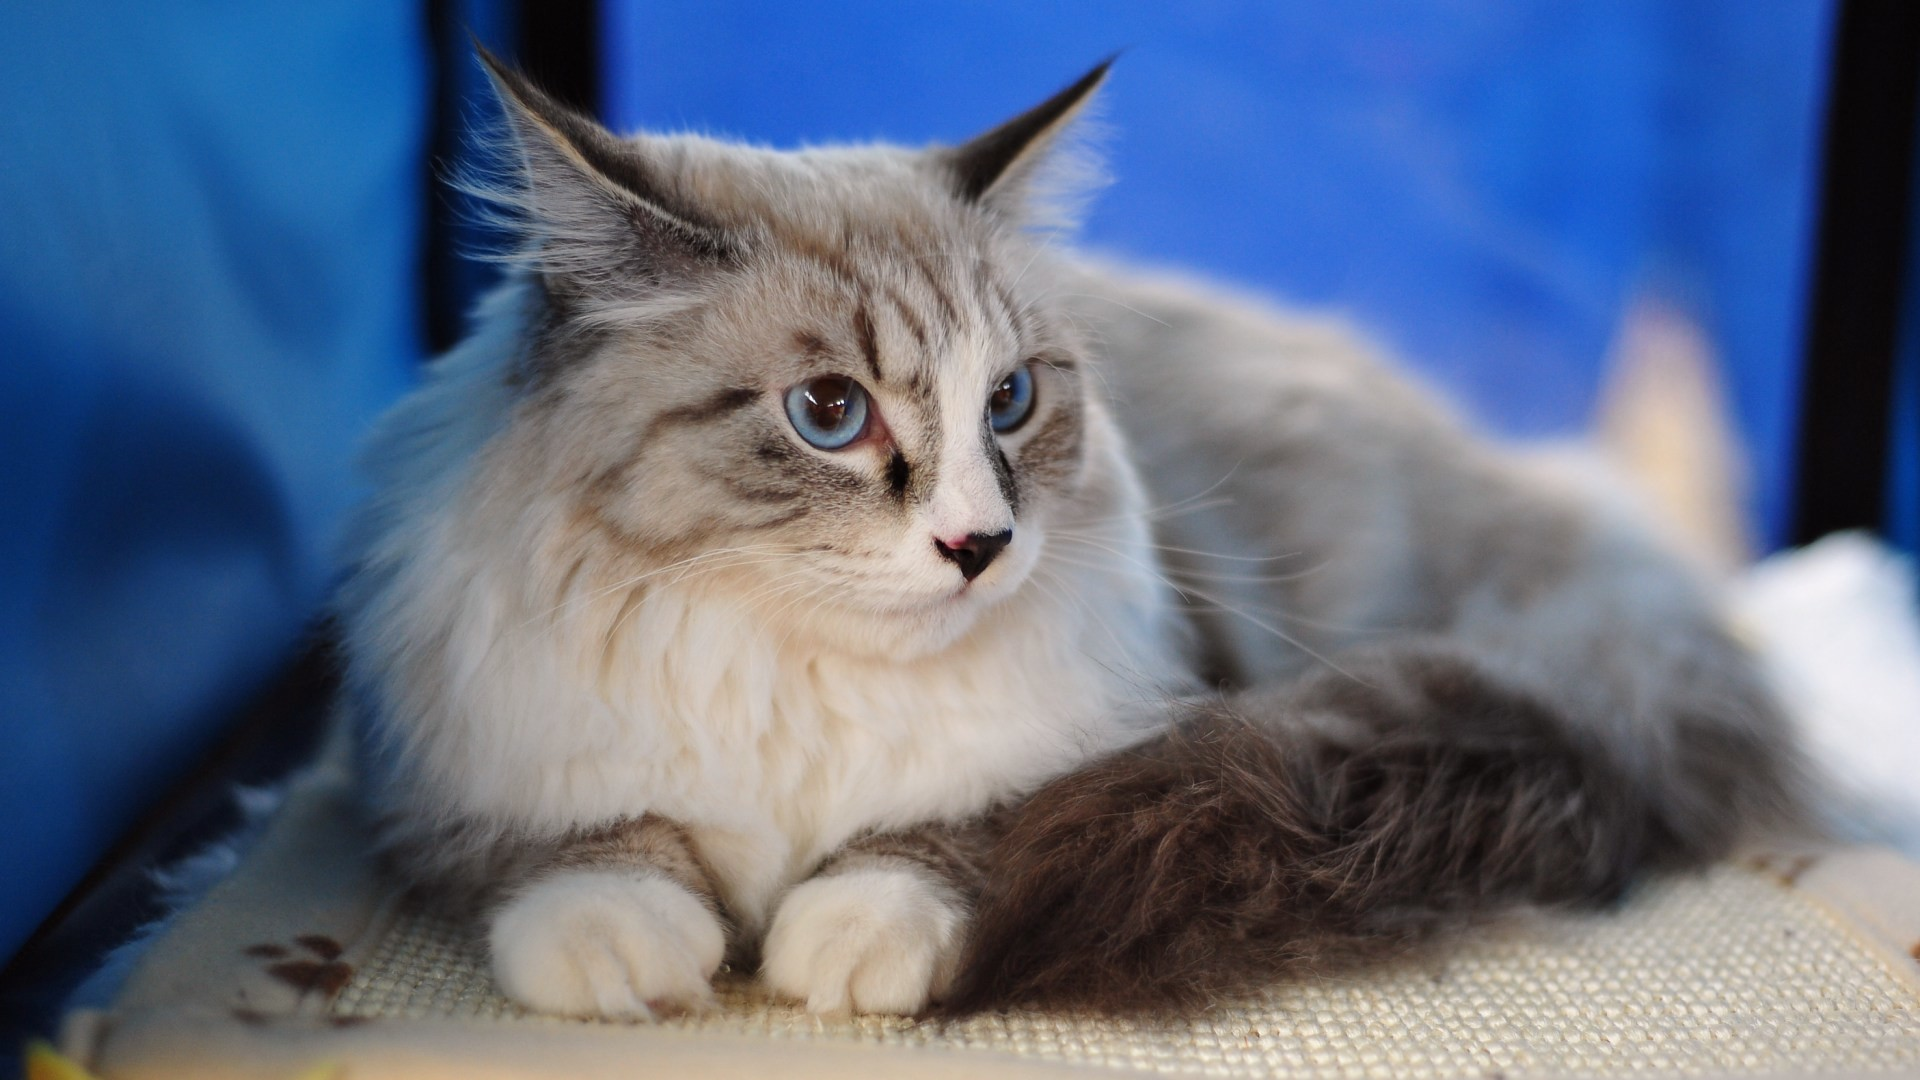 Res: 1920x1080, Maine Coon cat